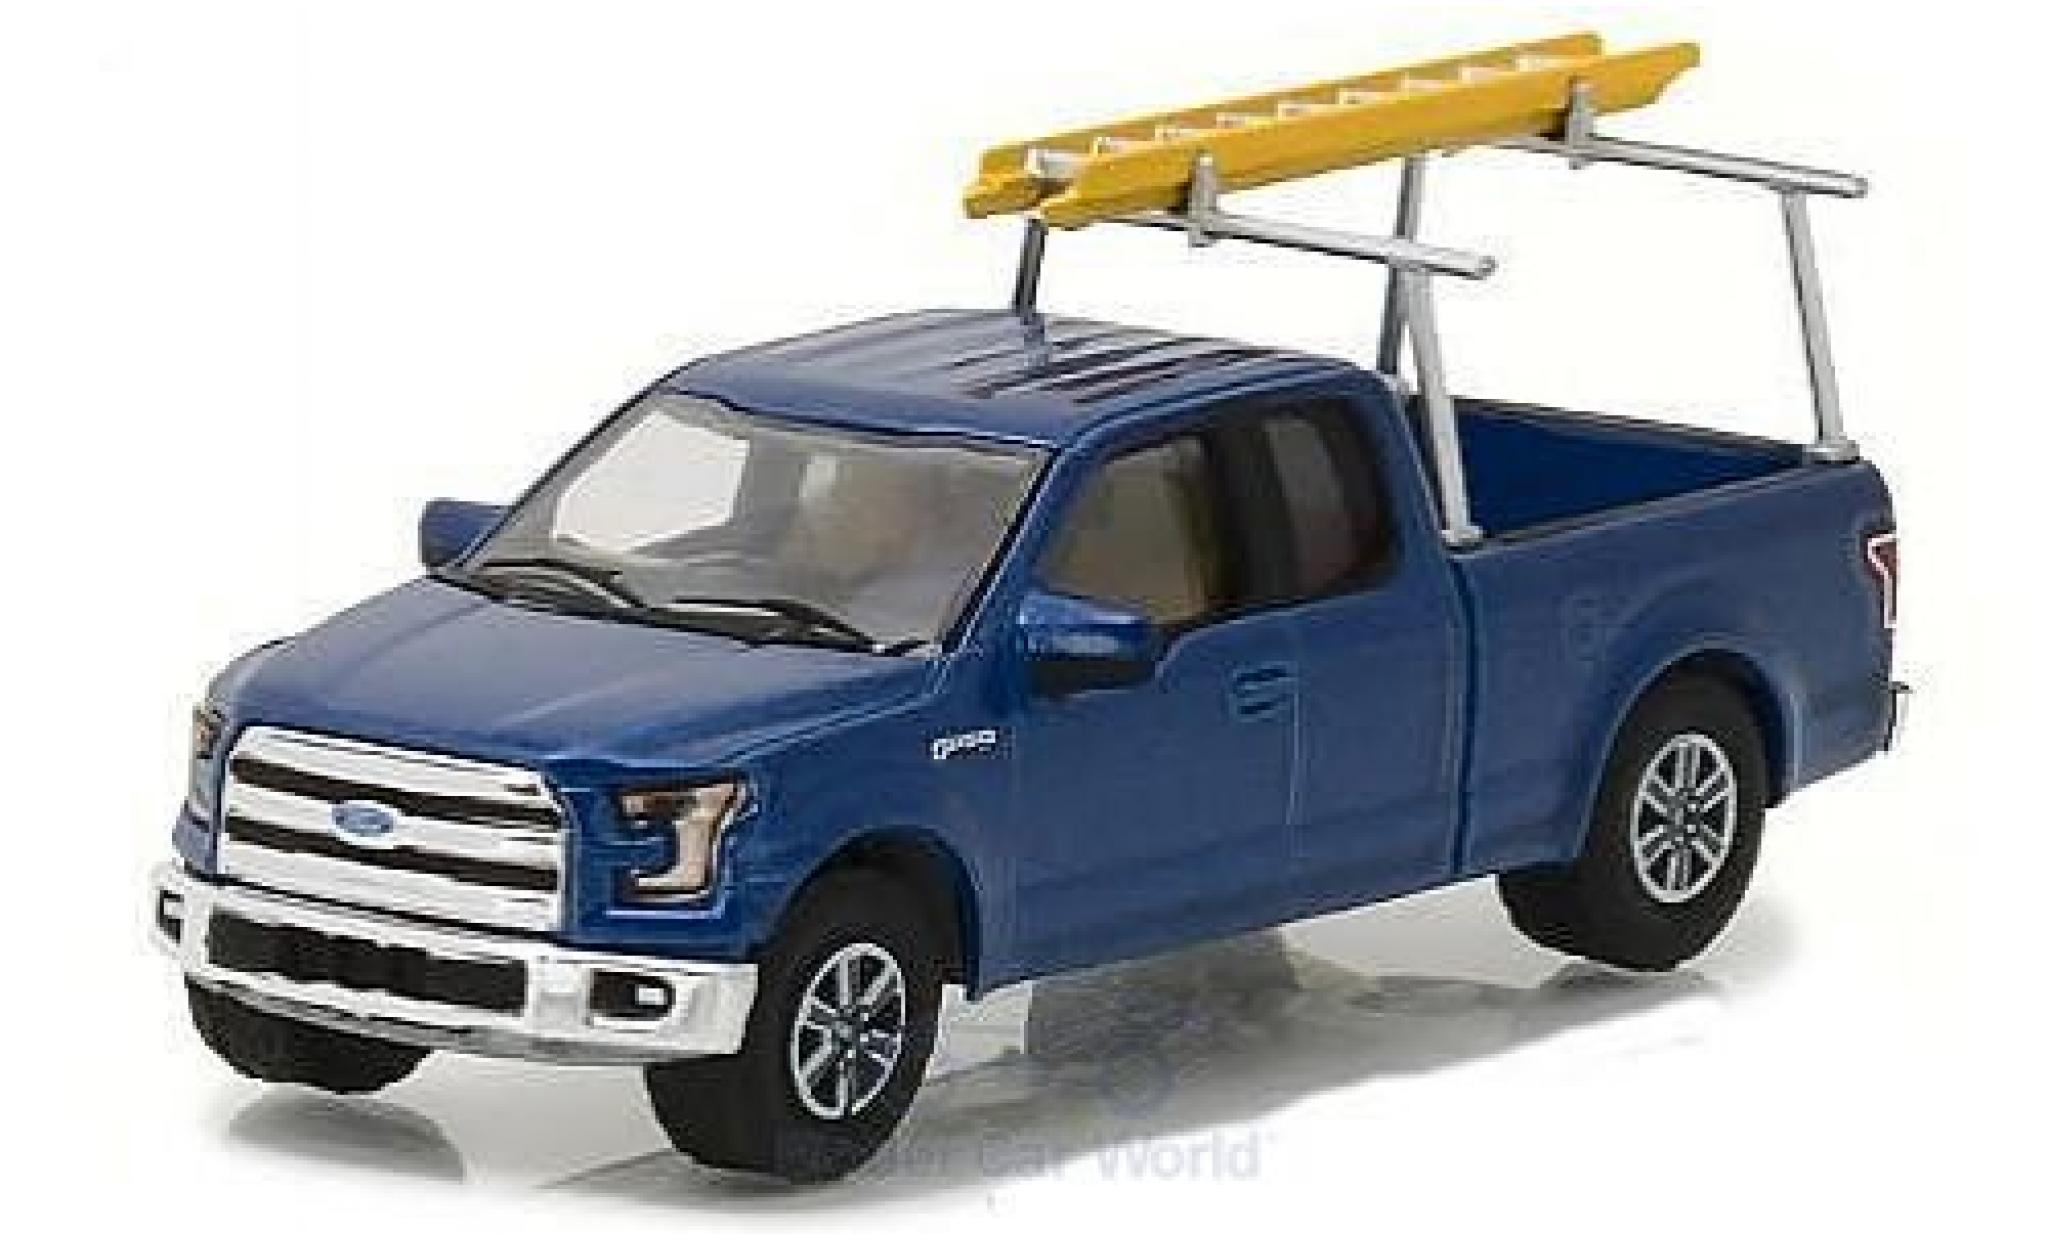 Ford F-1 1/64 Greenlight 50 metallic-bleue 2015 with Ladder Rack